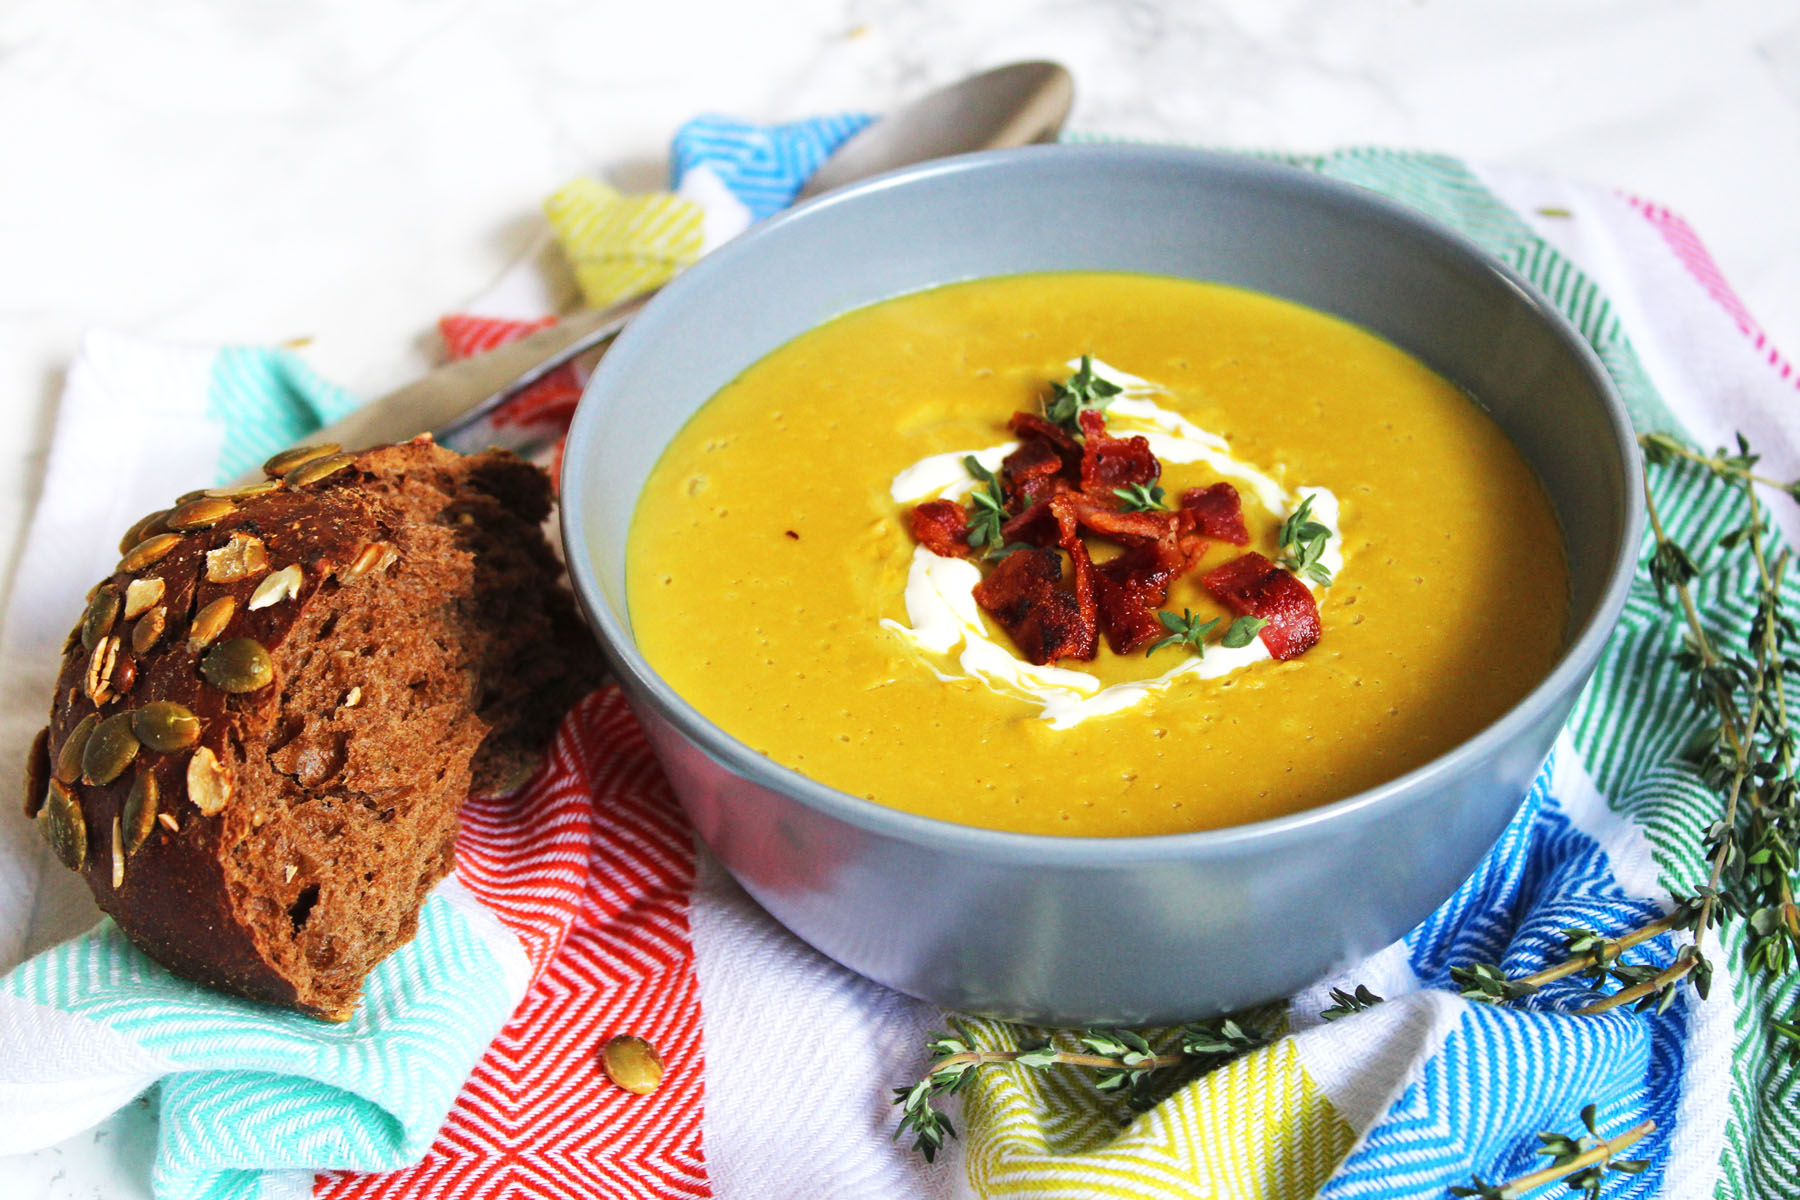 Chestnut and Parsnip Soup with Crispy Bacon Bits